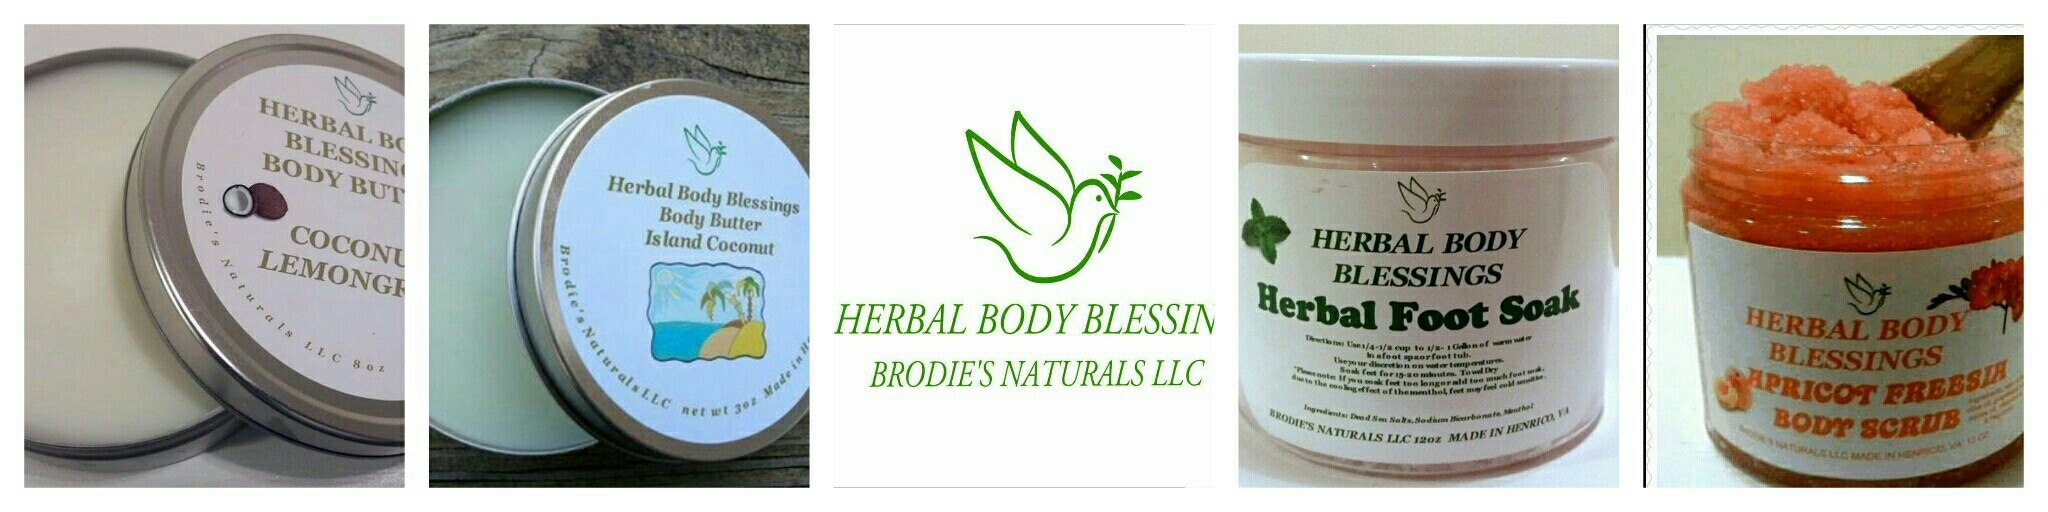 Herbal Body Blessings